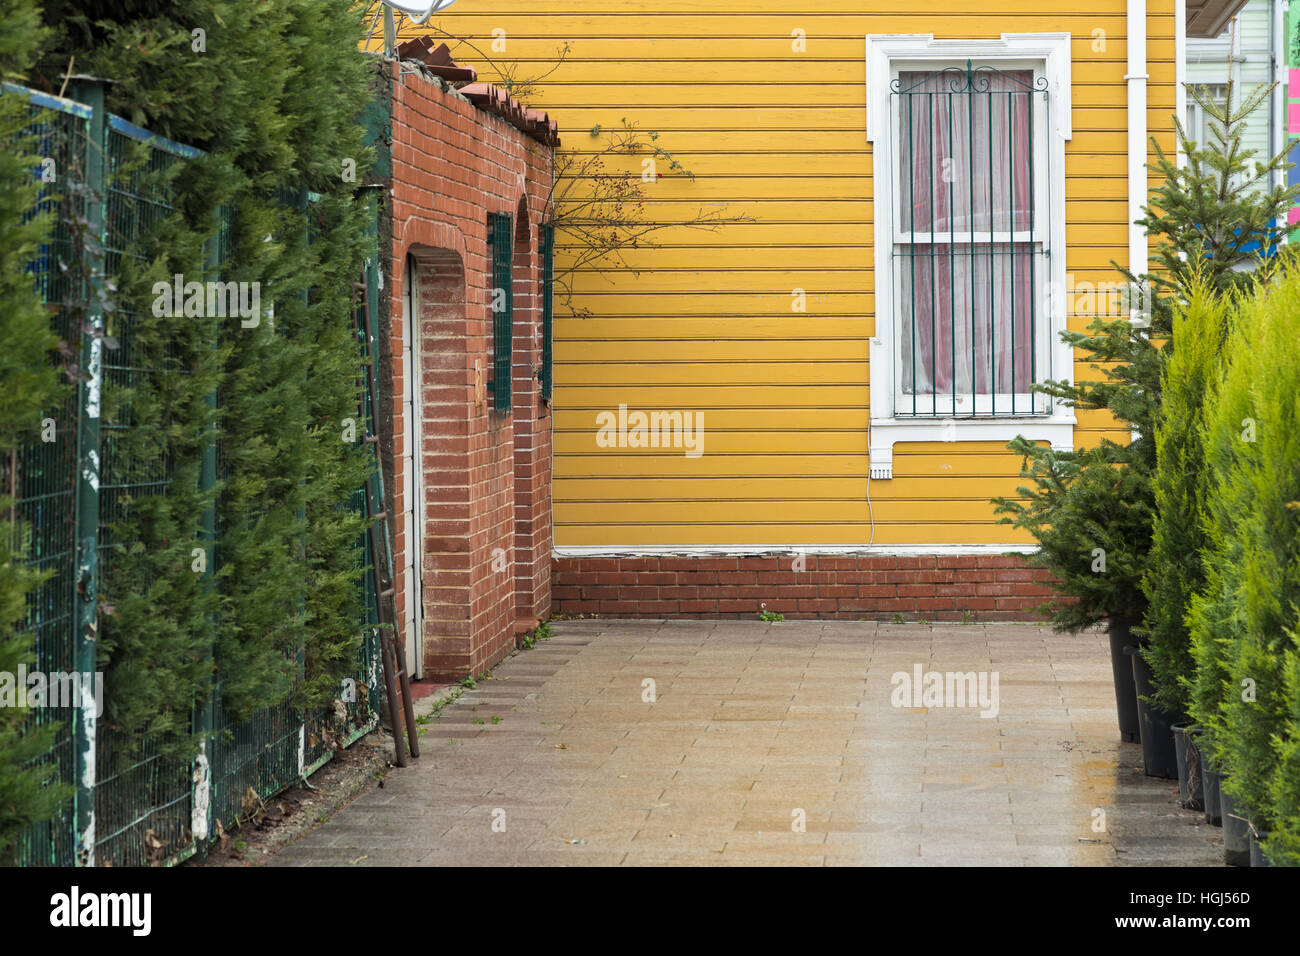 yellow wooden siding house - Stock Image